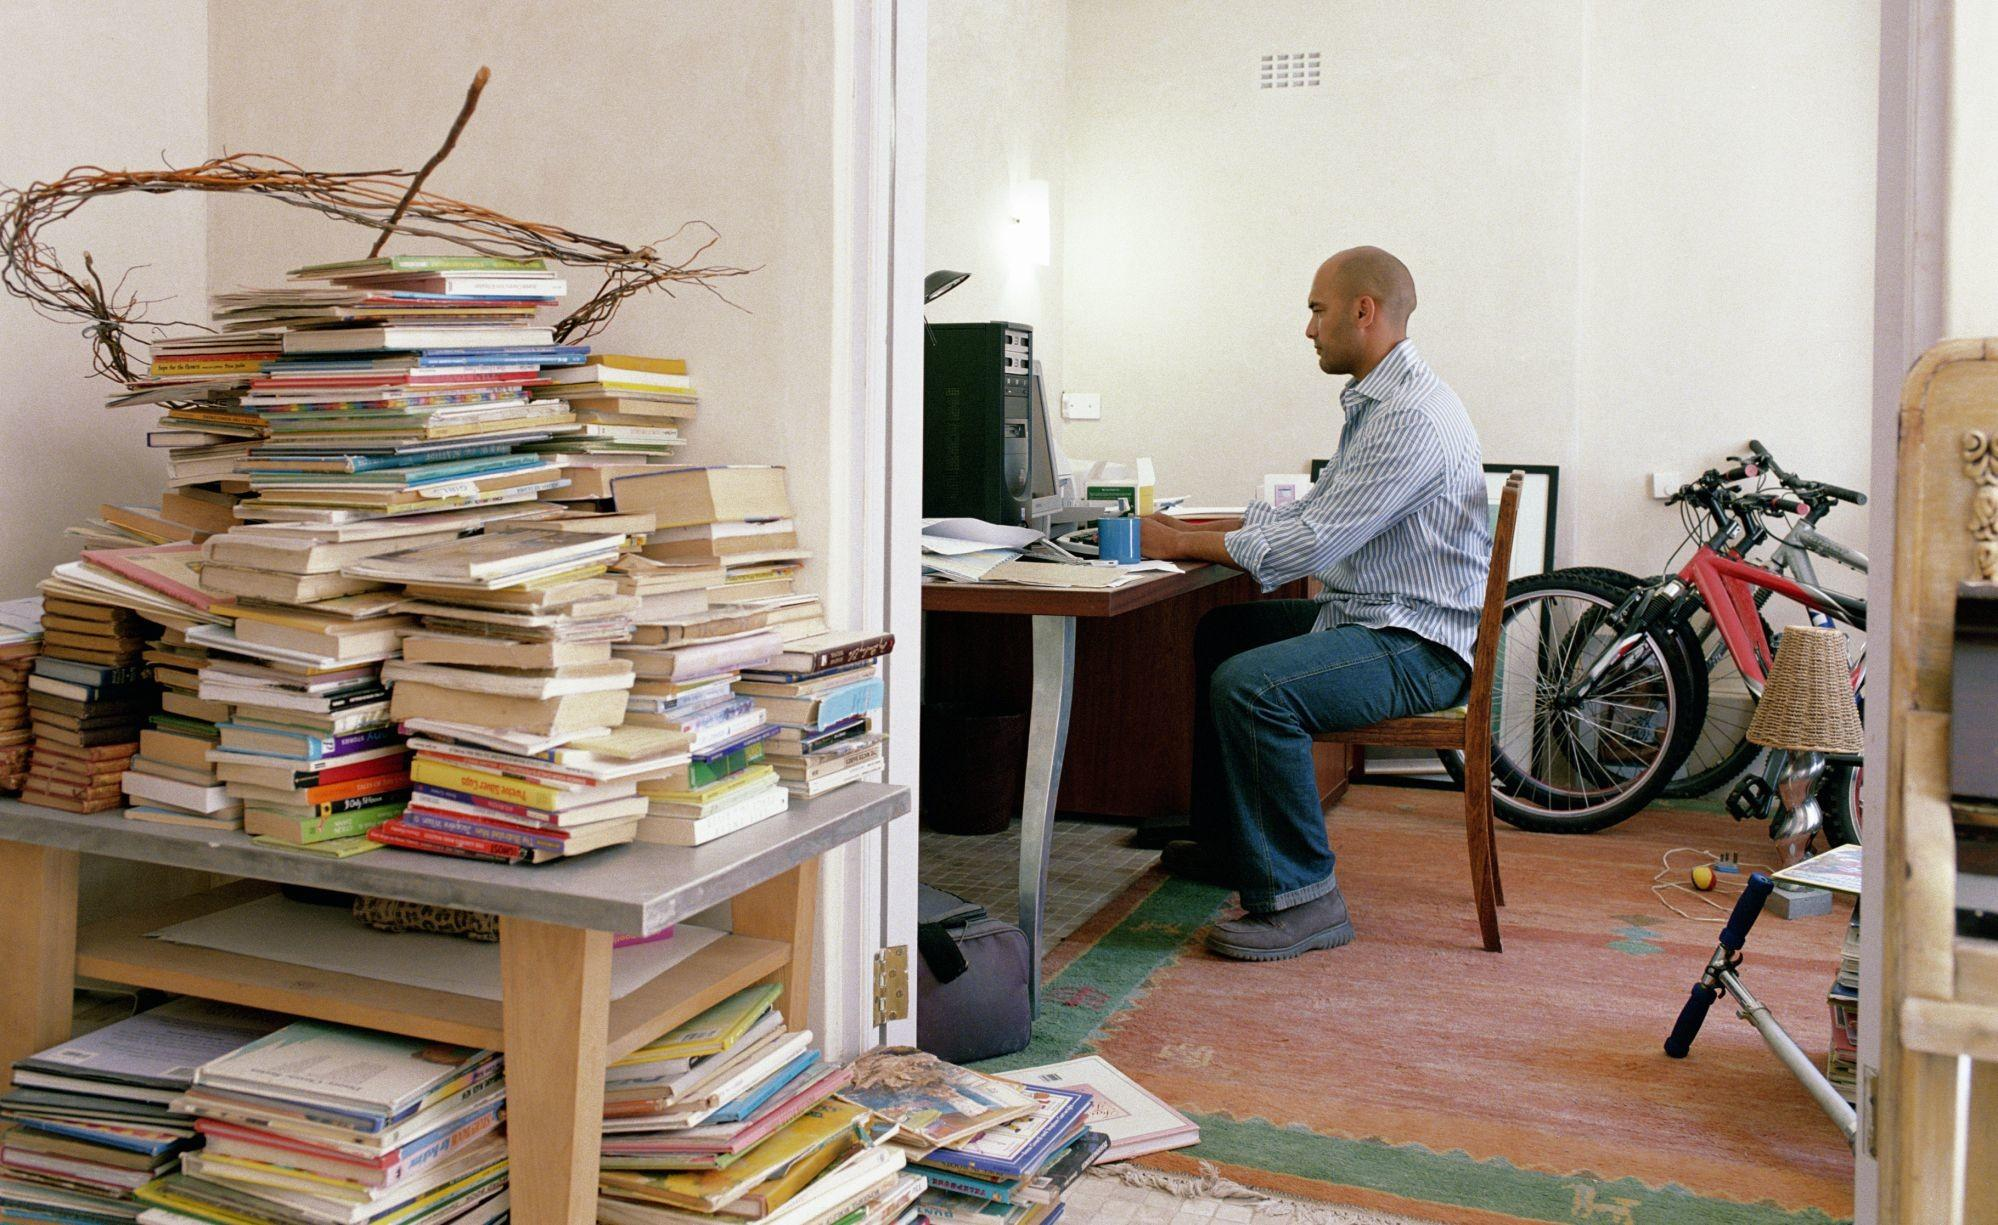 Clutter Affects Your Time Money Stress